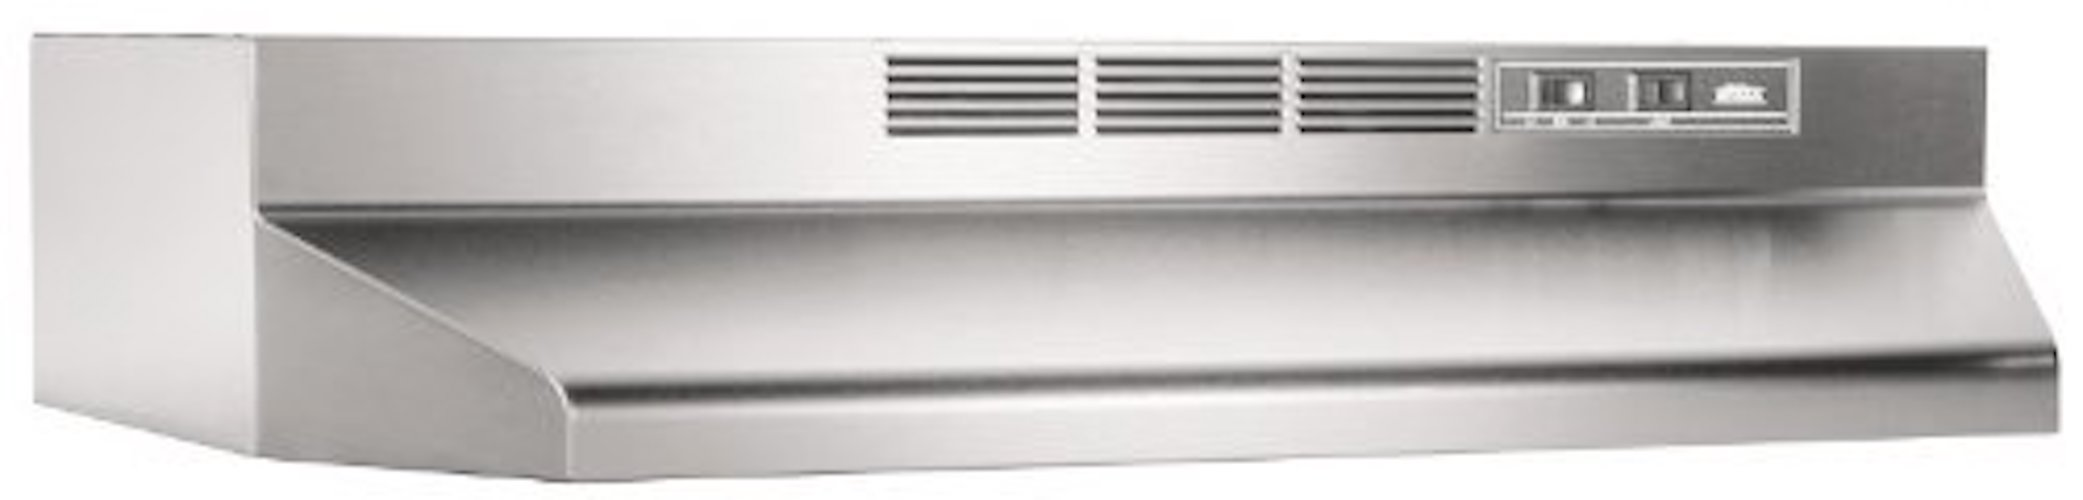 1. Broan 413004 ADA Capable Non-Ducted Under-Cabinet Range Hood, 30-Inch, Stainless Steel